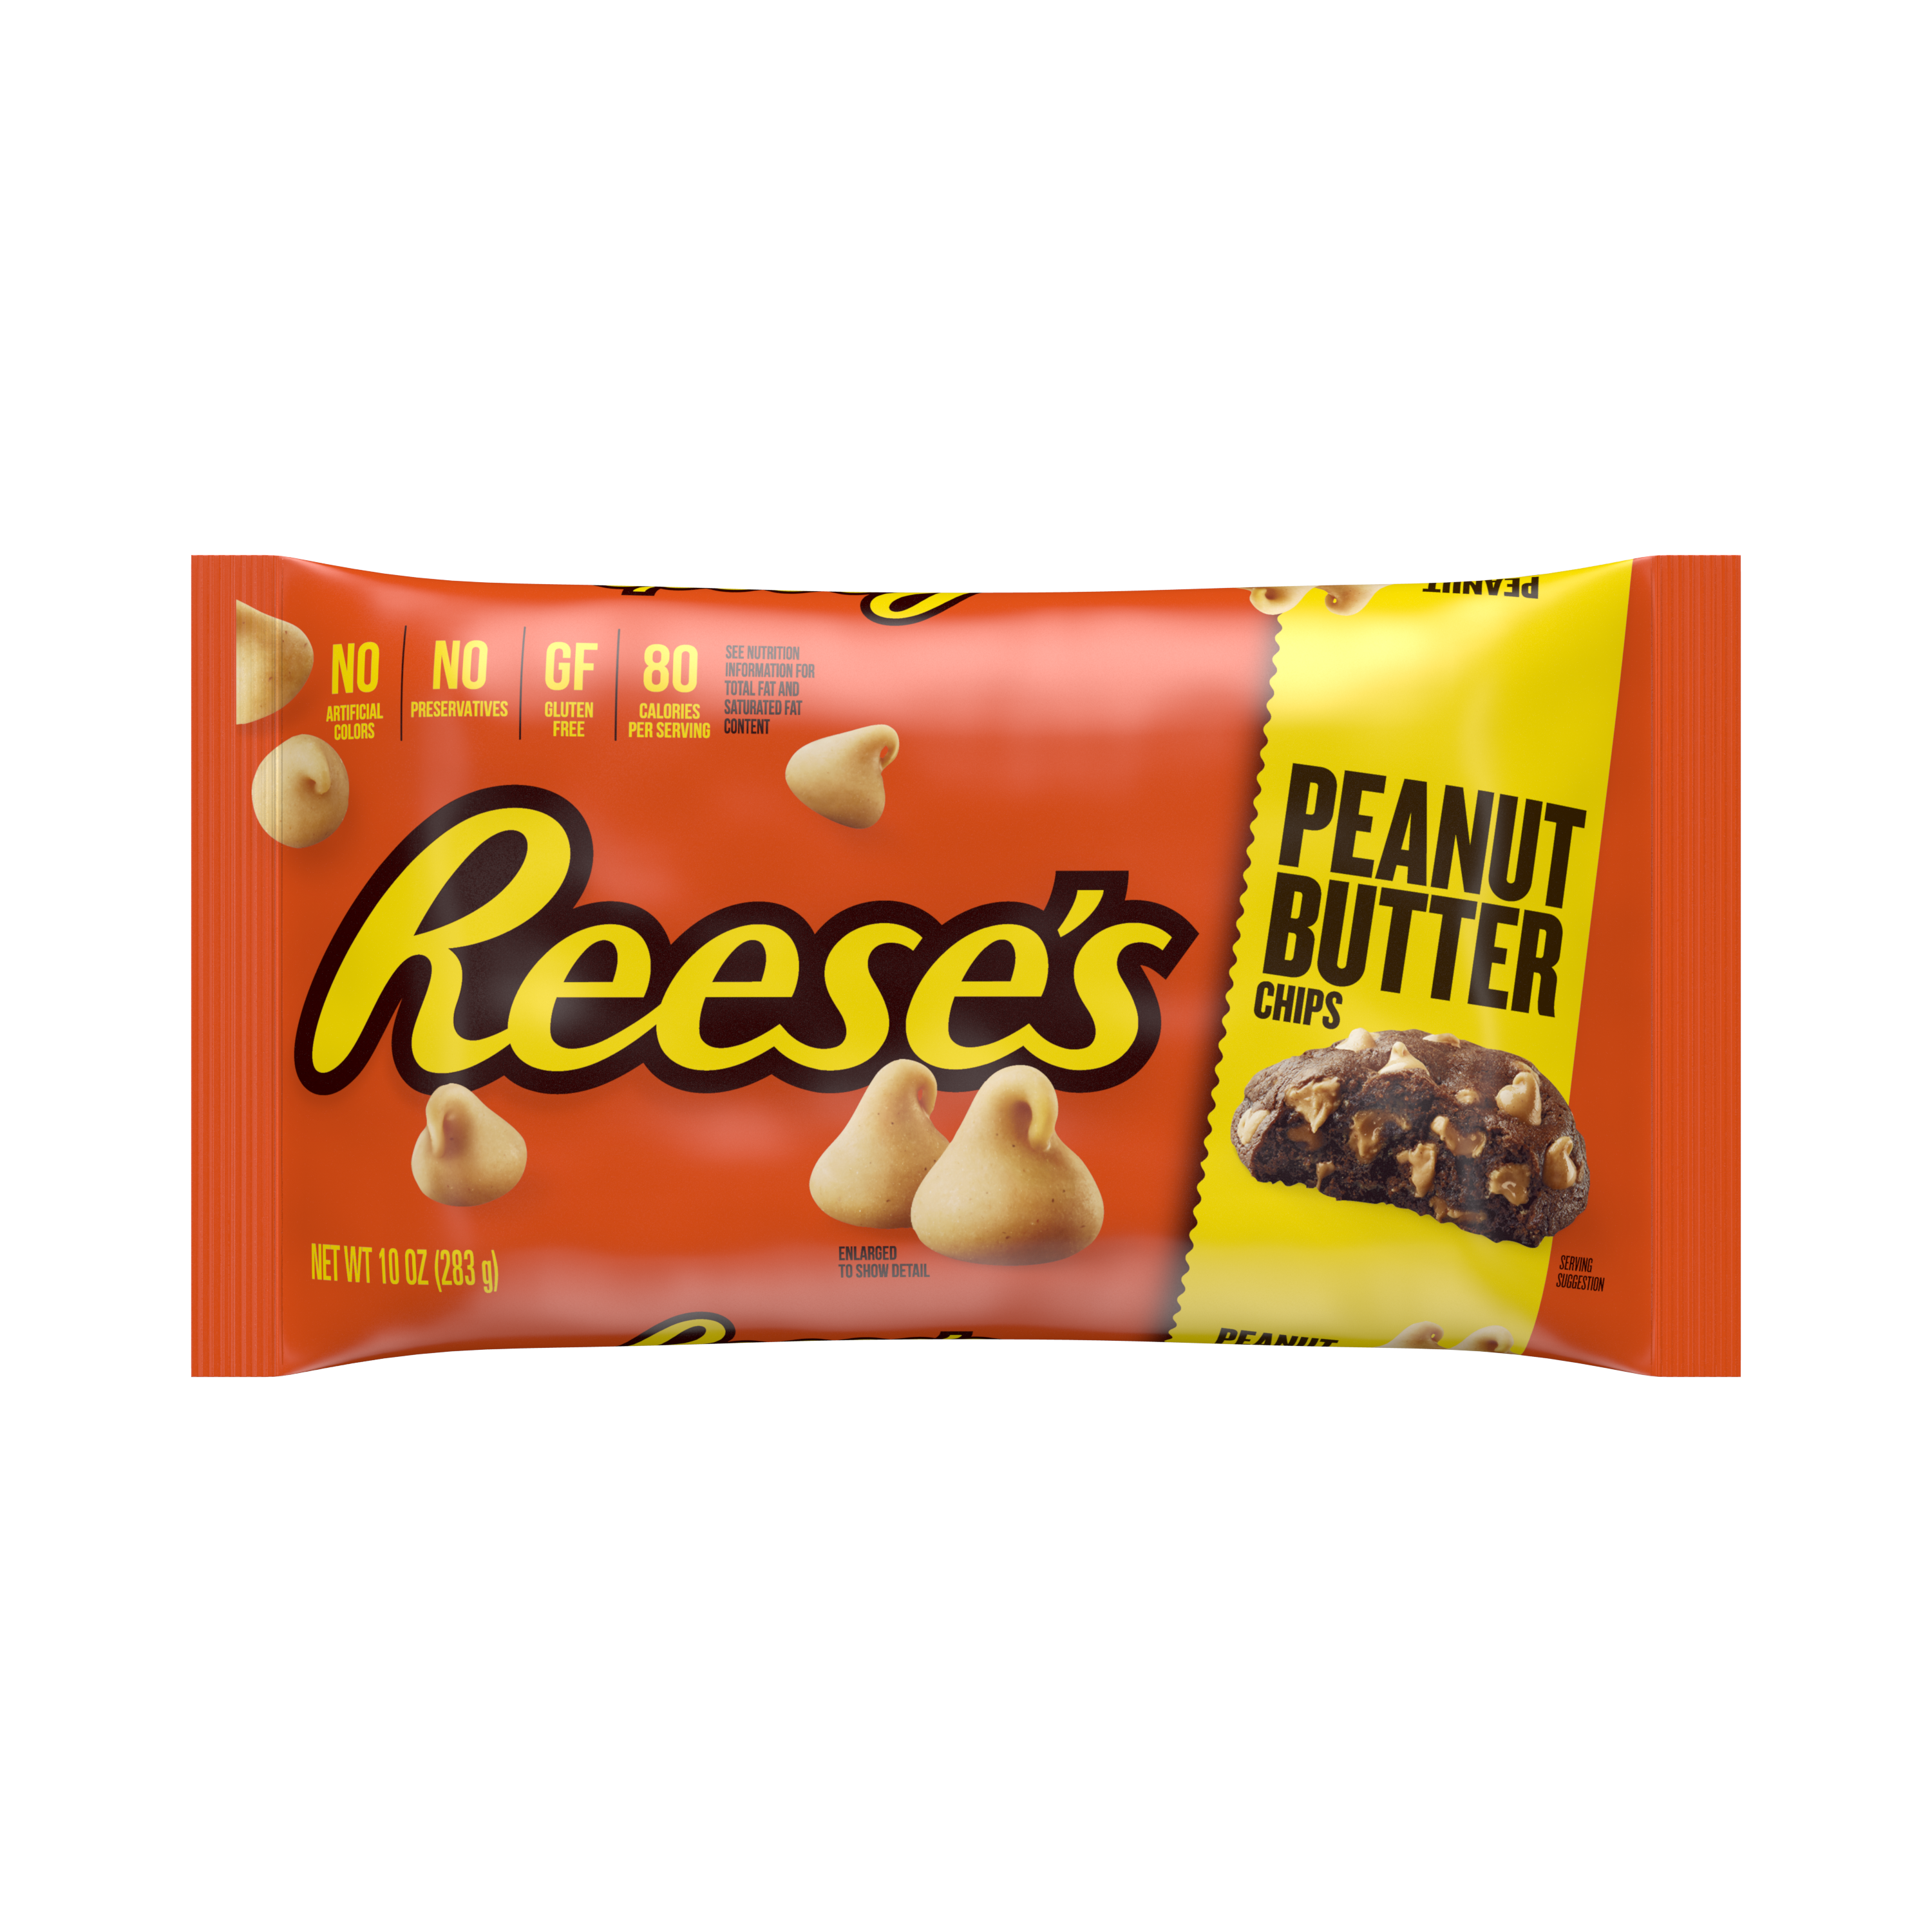 REESE'S Peanut Butter Chips, 10 oz bag - Front of Package